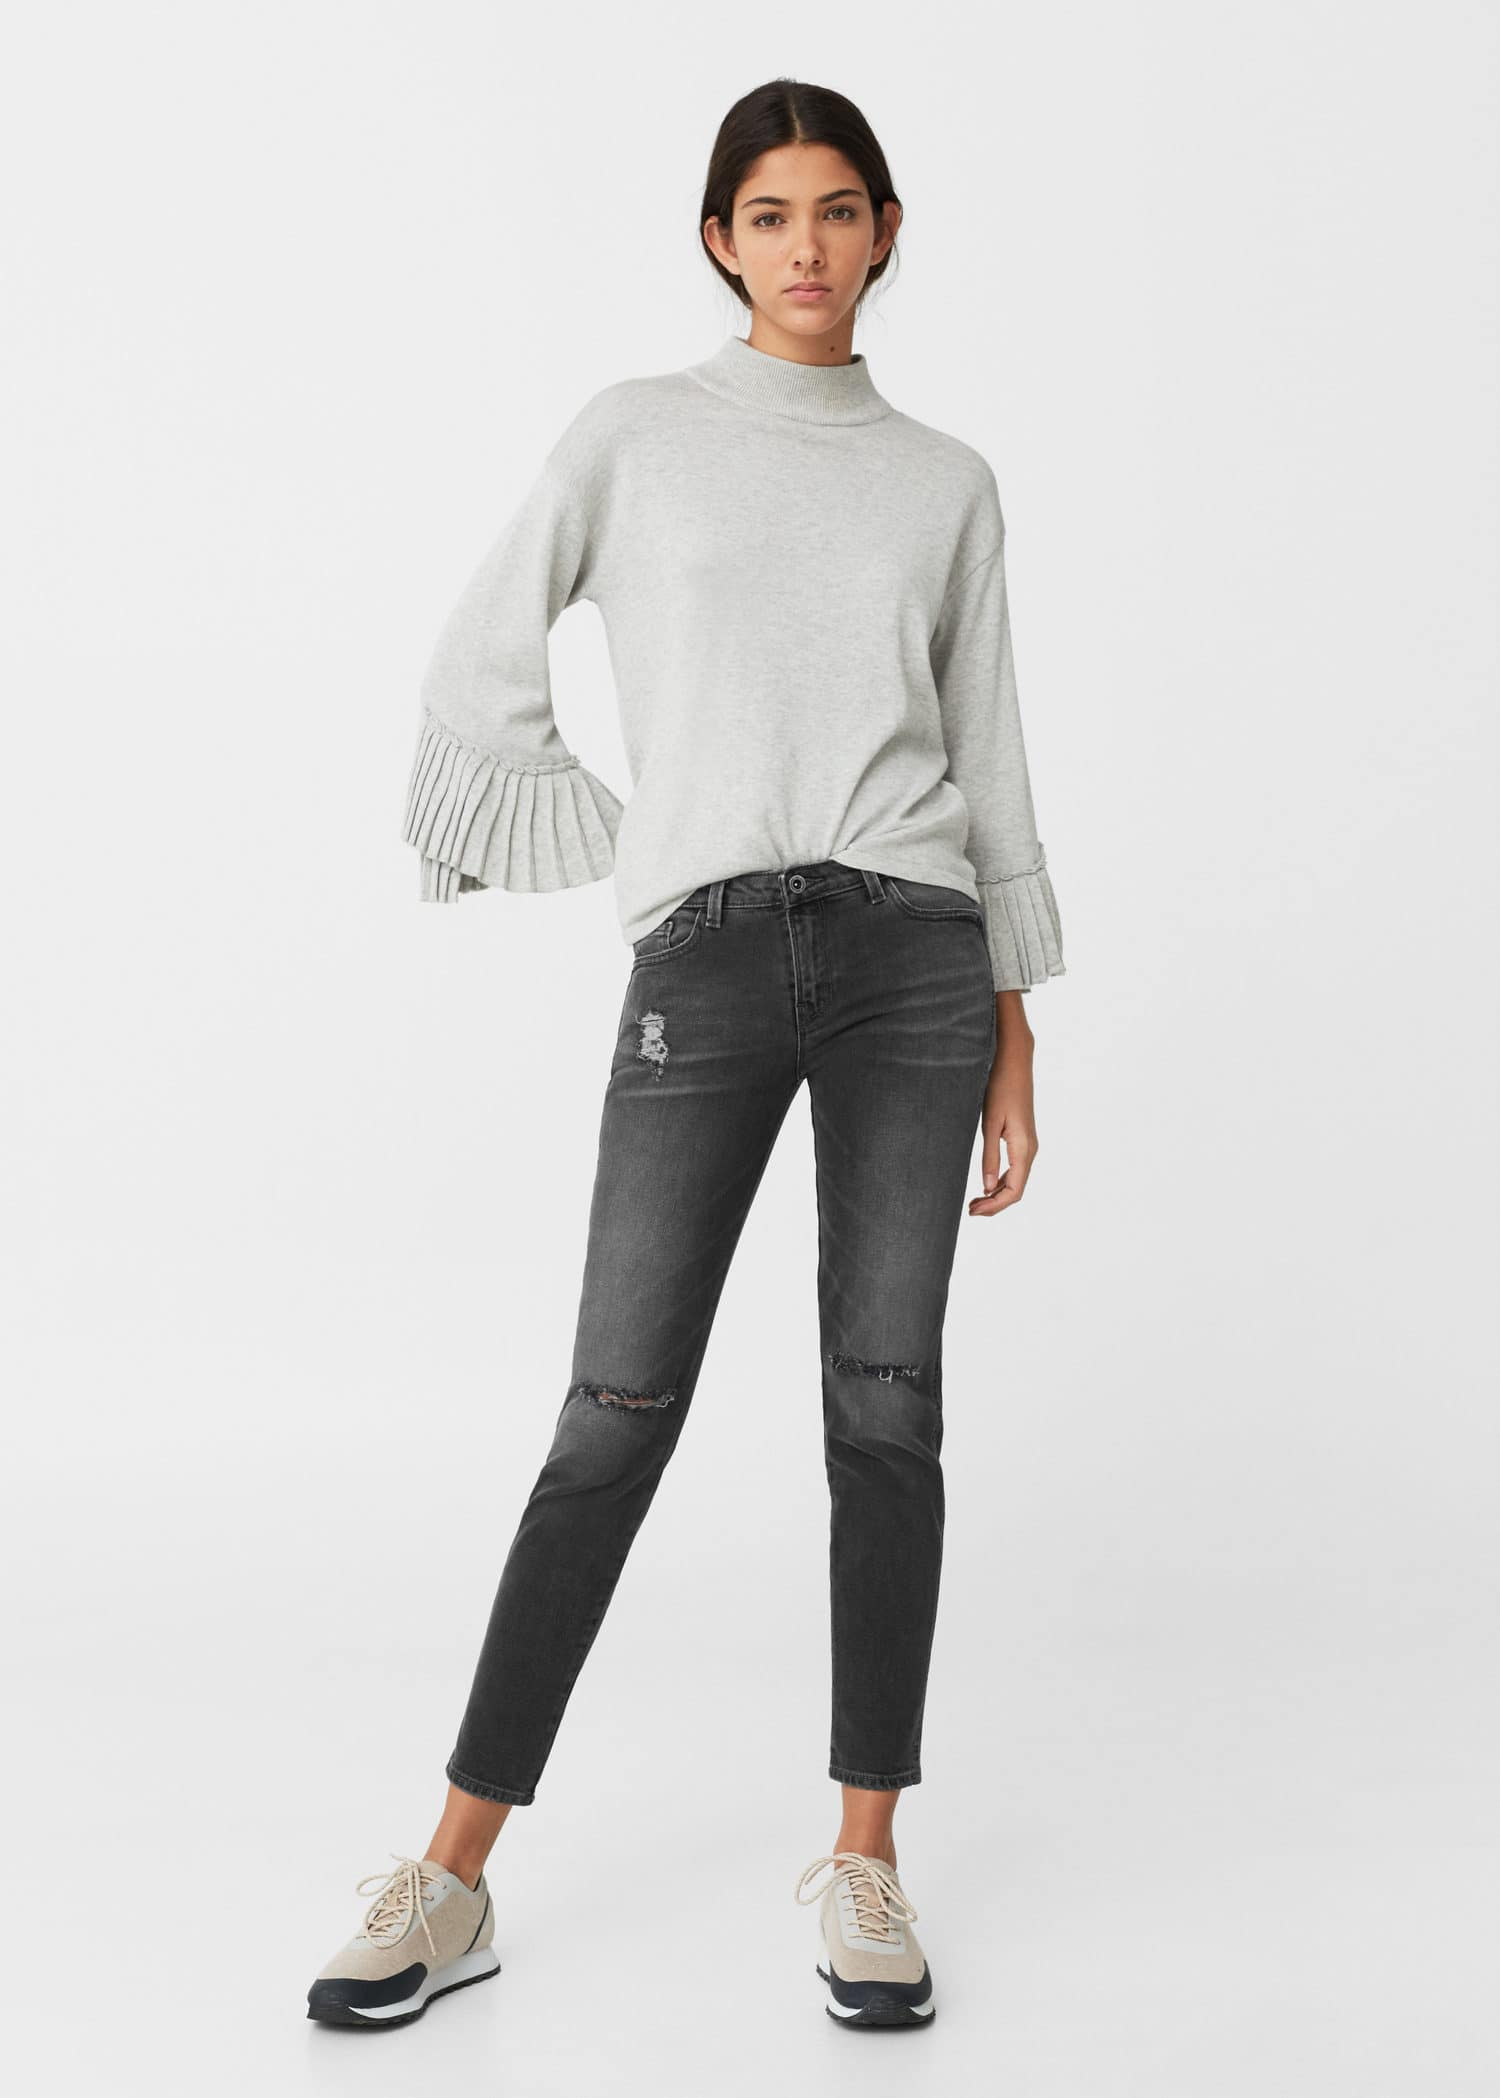 Jeans push up uptown Donna | OUTLET Italia